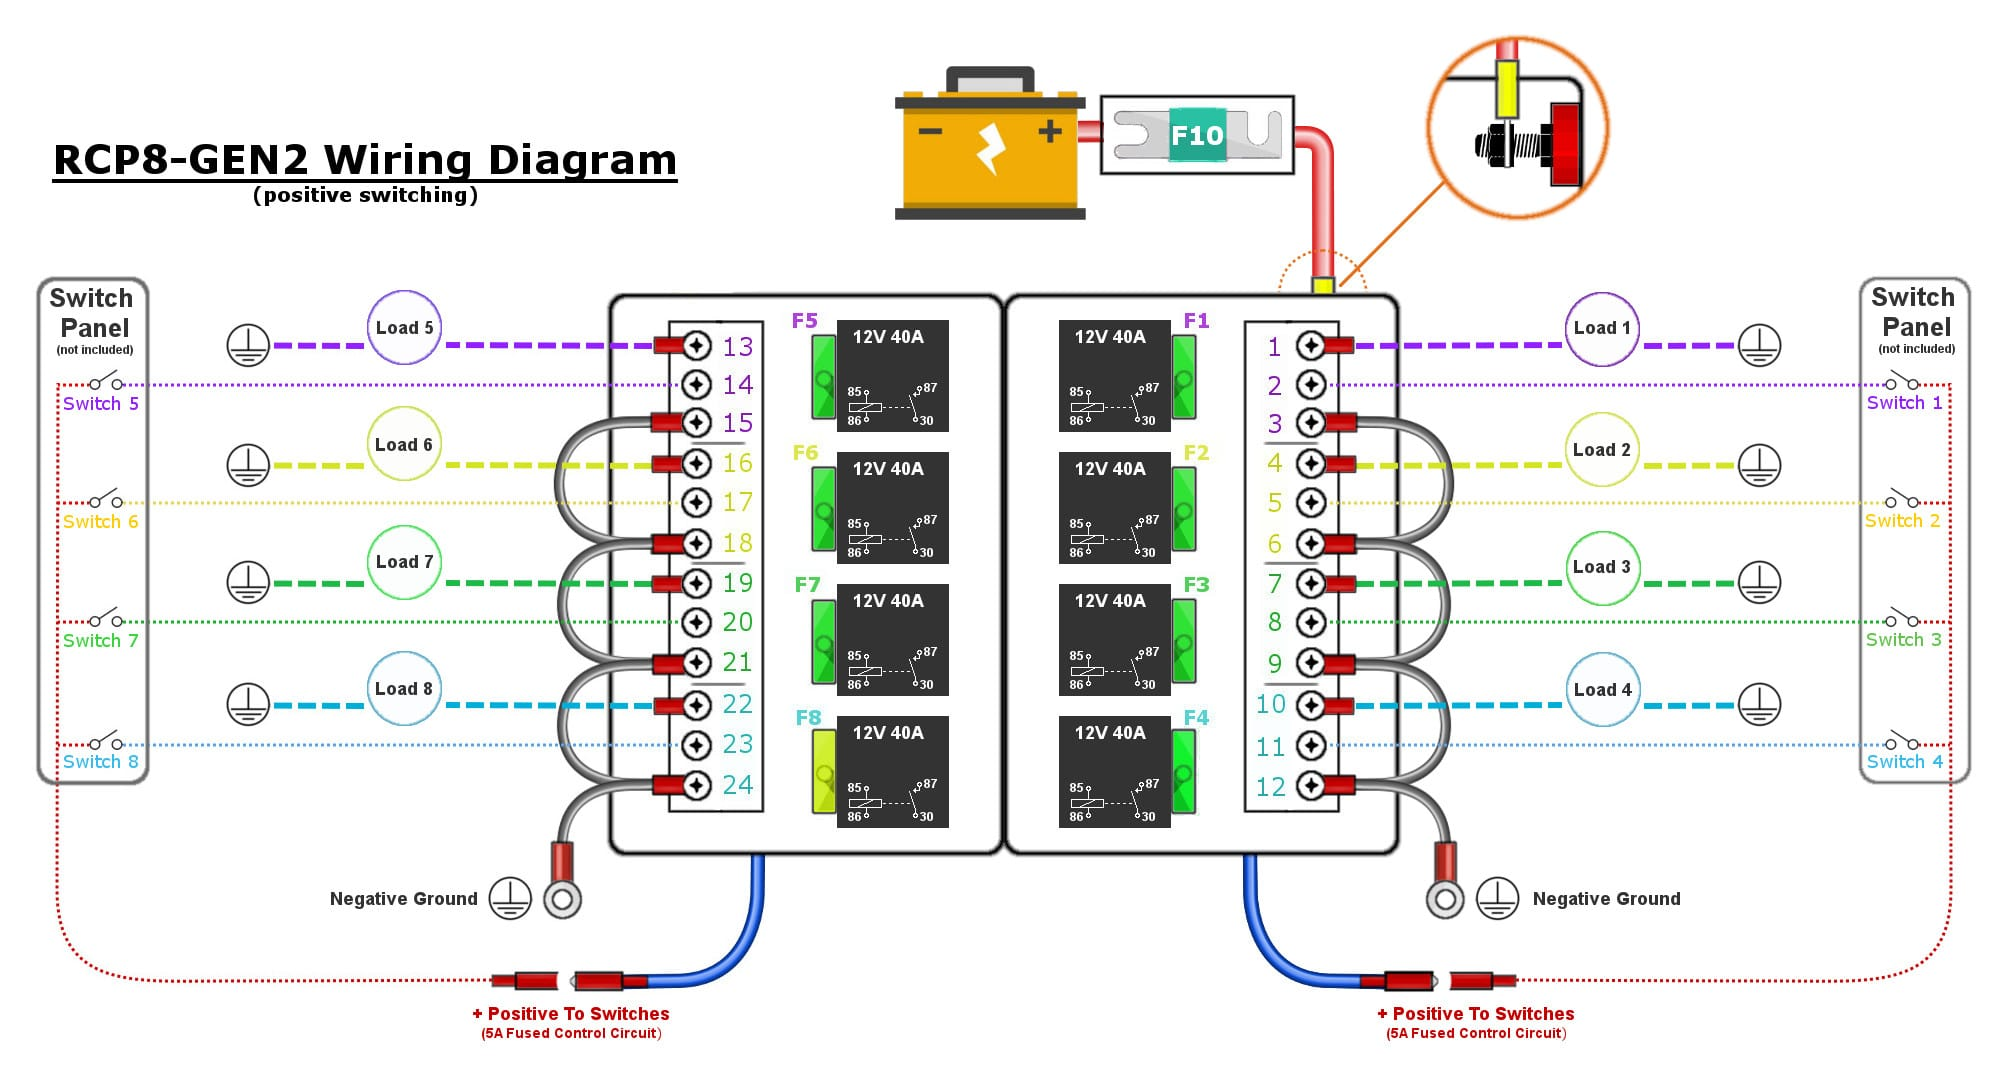 automotive wiring diagram labeled    automotive    relay panels     choose 4  6  or 8 relays mgi     automotive    relay panels     choose 4  6  or 8 relays mgi